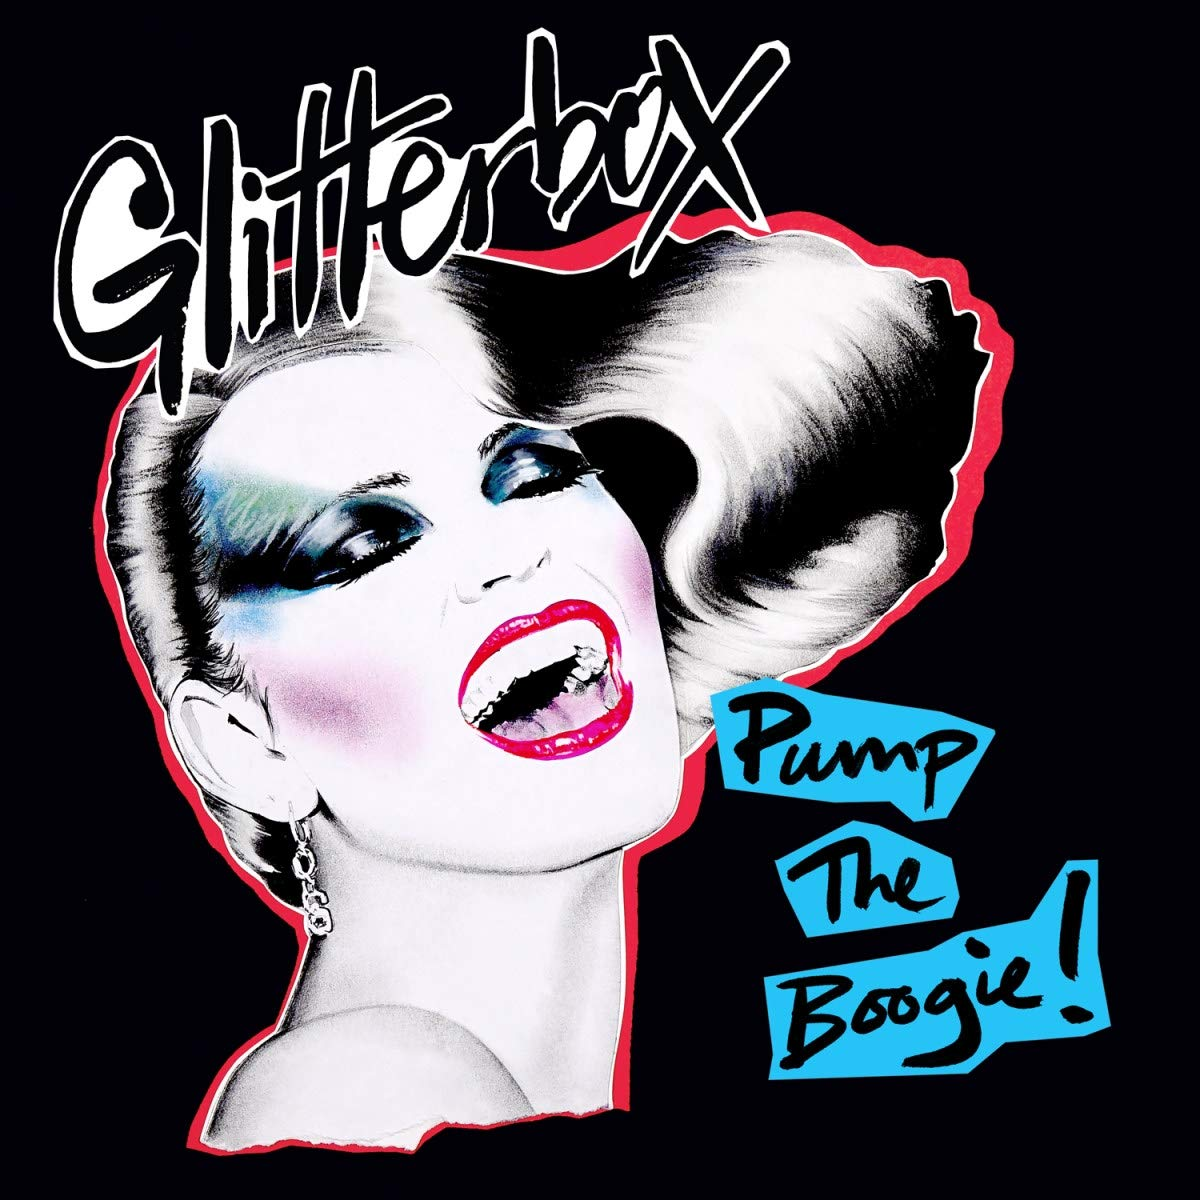 melvo baptiste - Glitterbox - Pump The Boogie!